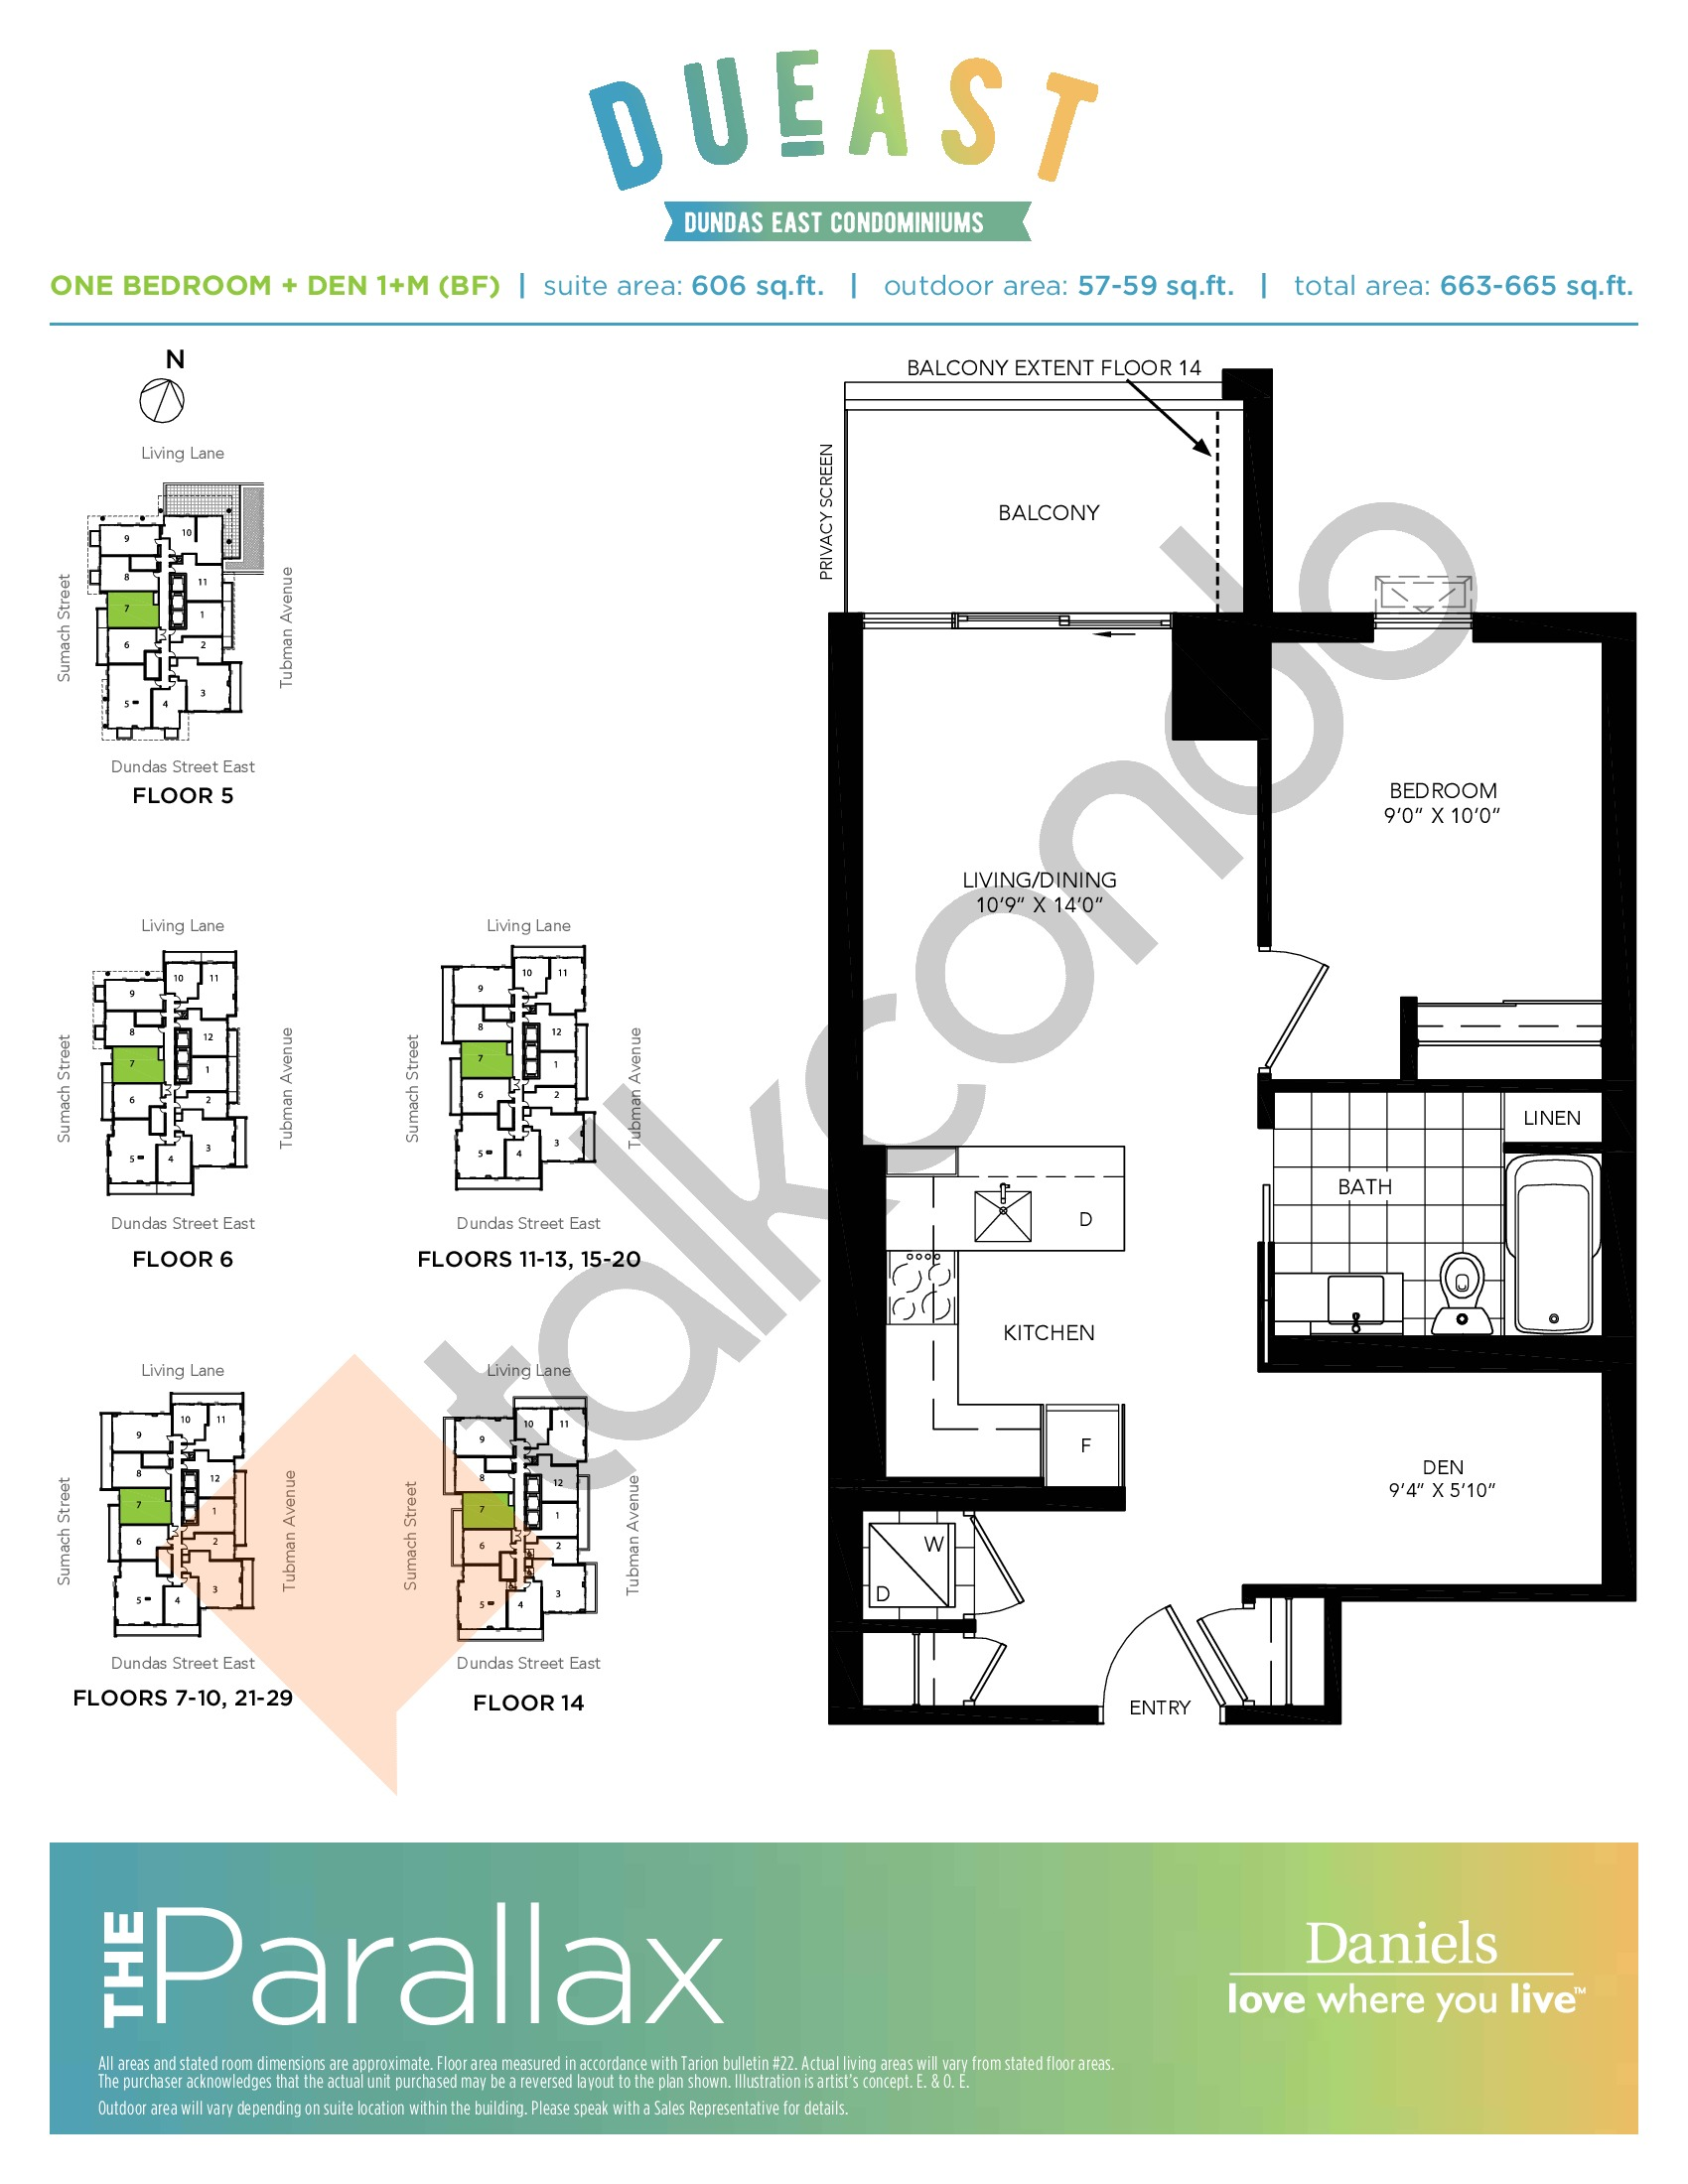 The Parallax 1+M (BF) Floor Plan at DuEast Condos - 606 sq.ft